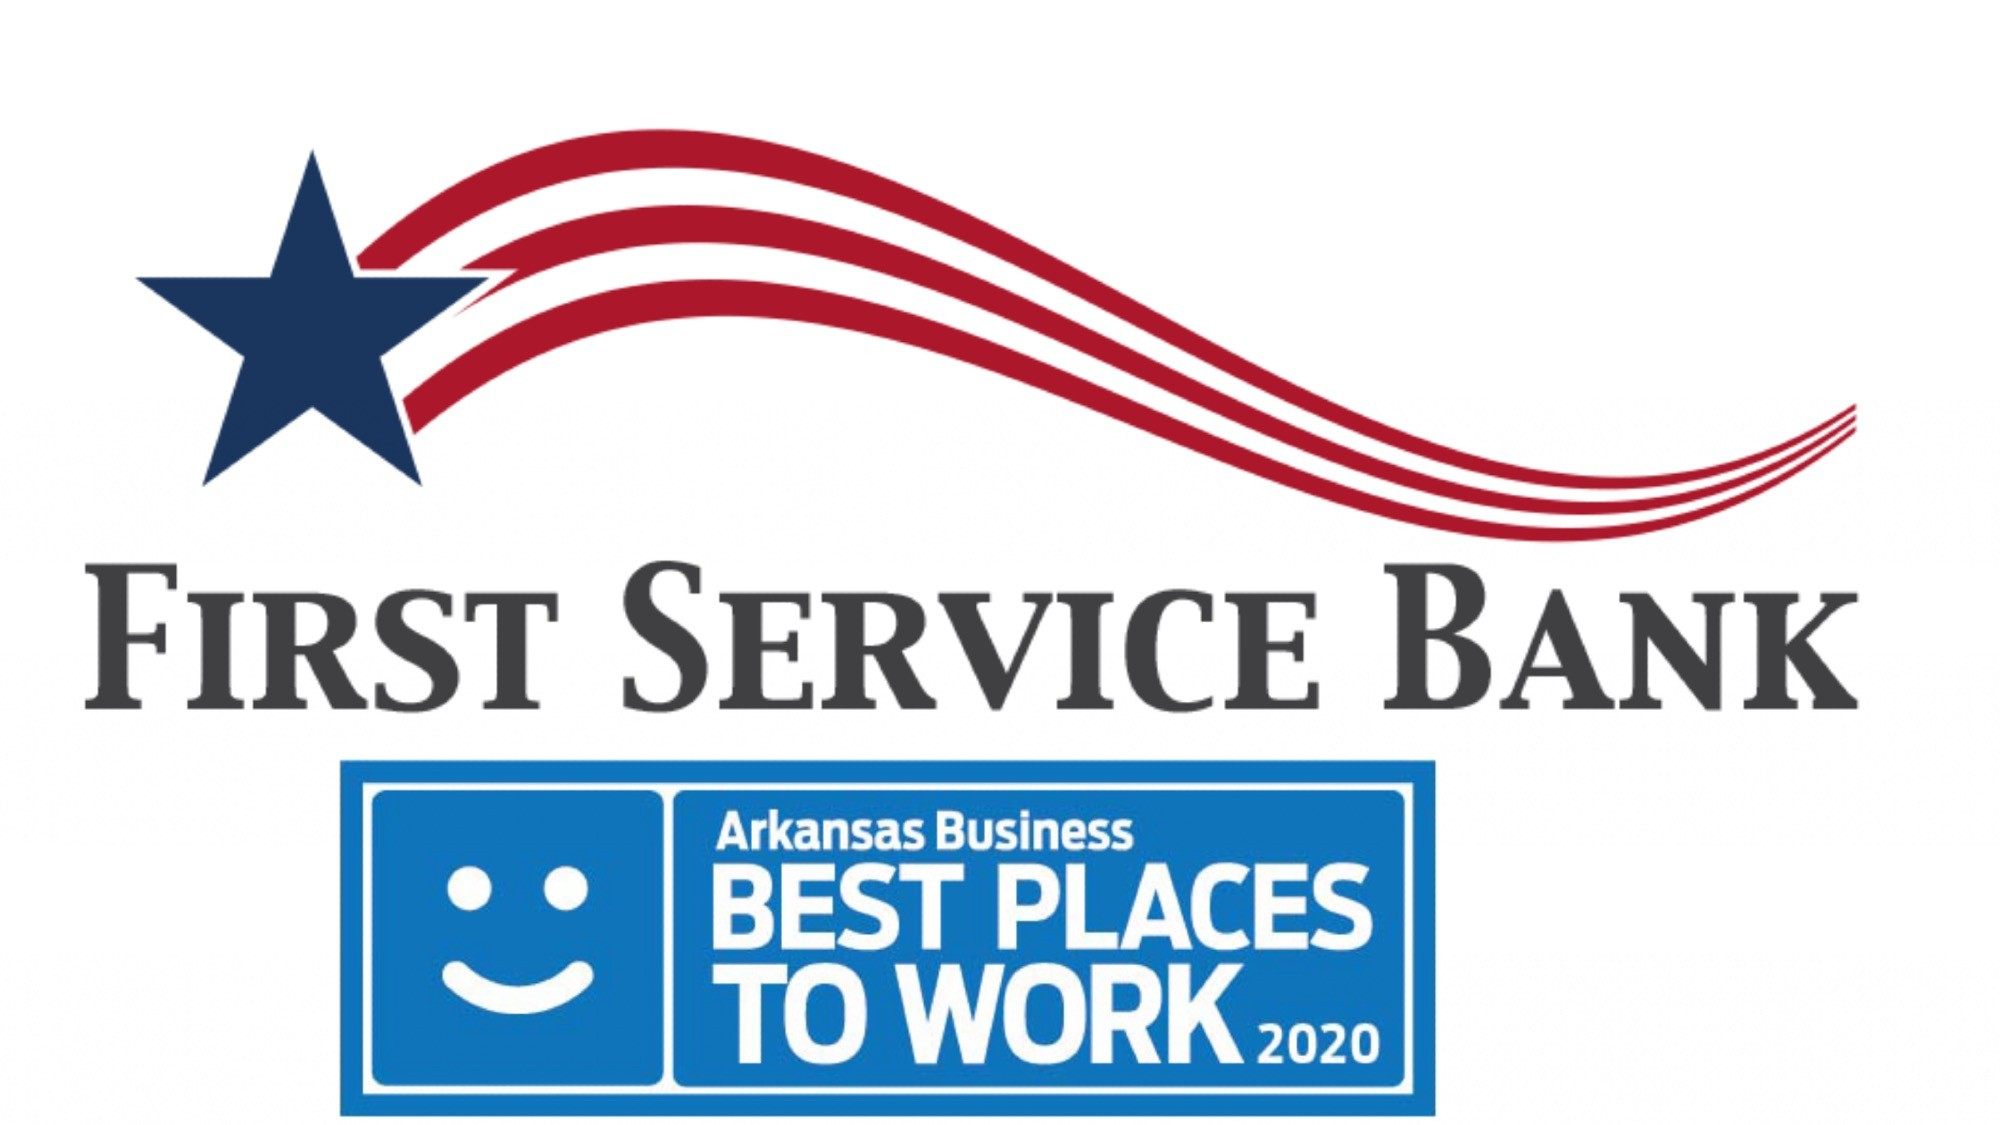 First Service Bank recognized as one of 2020 Best Places to Work in Arkansas